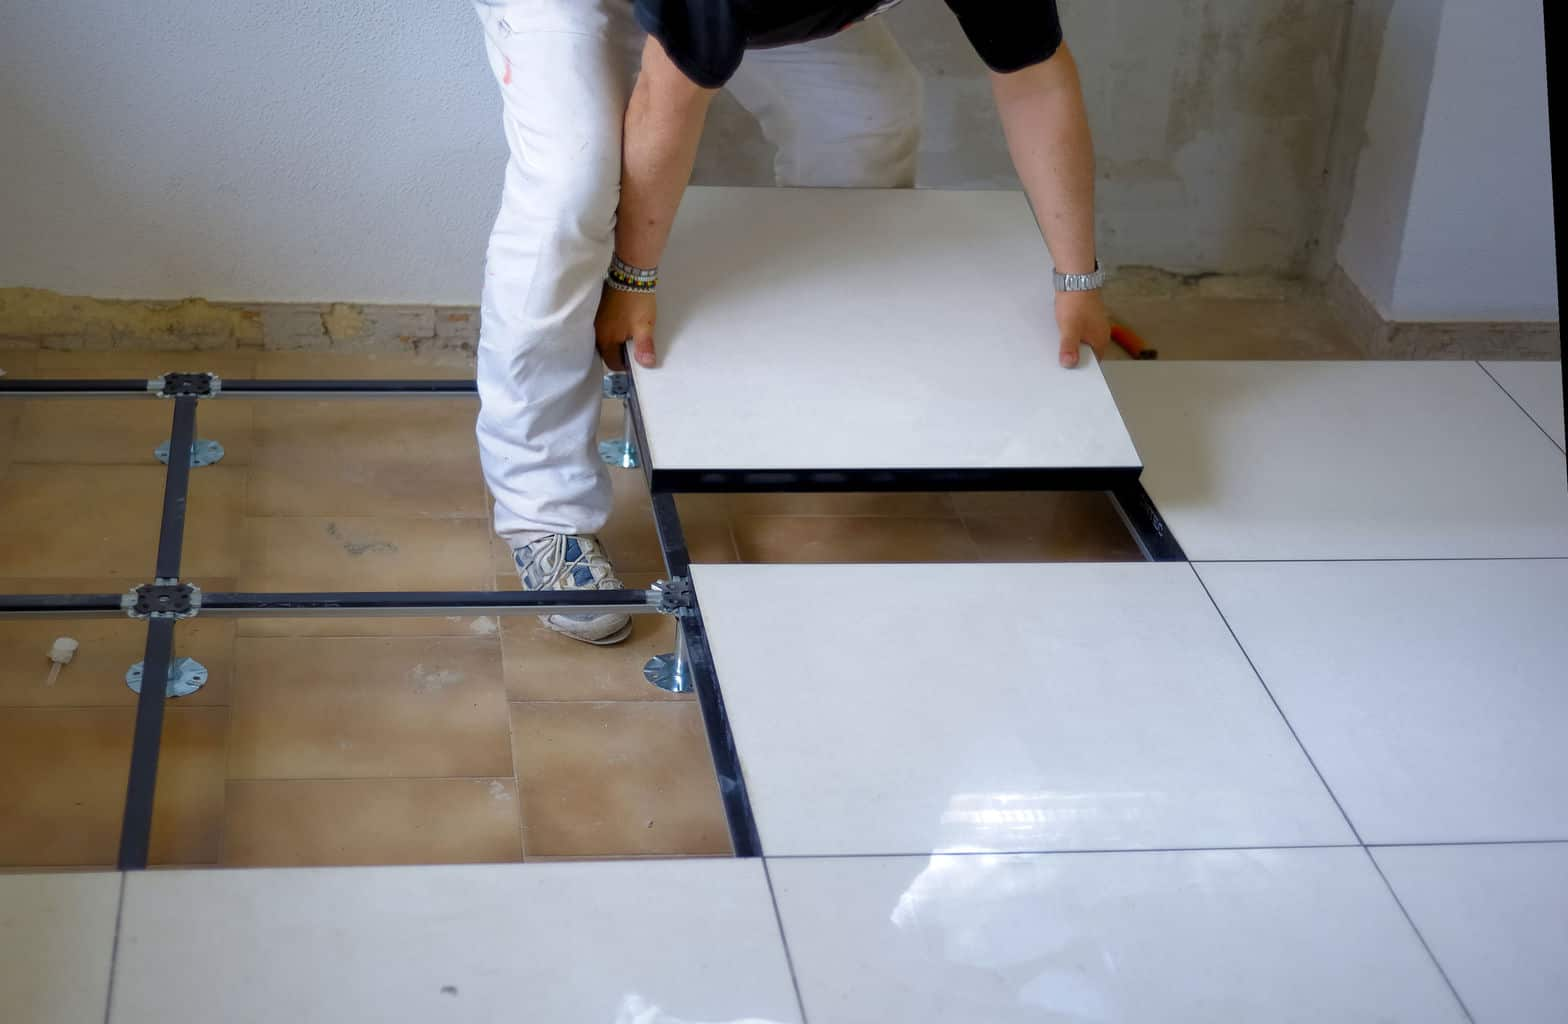 How to clean porcelain tile flooring a full guide to procelain durability of porcelain tile flooring dailygadgetfo Image collections